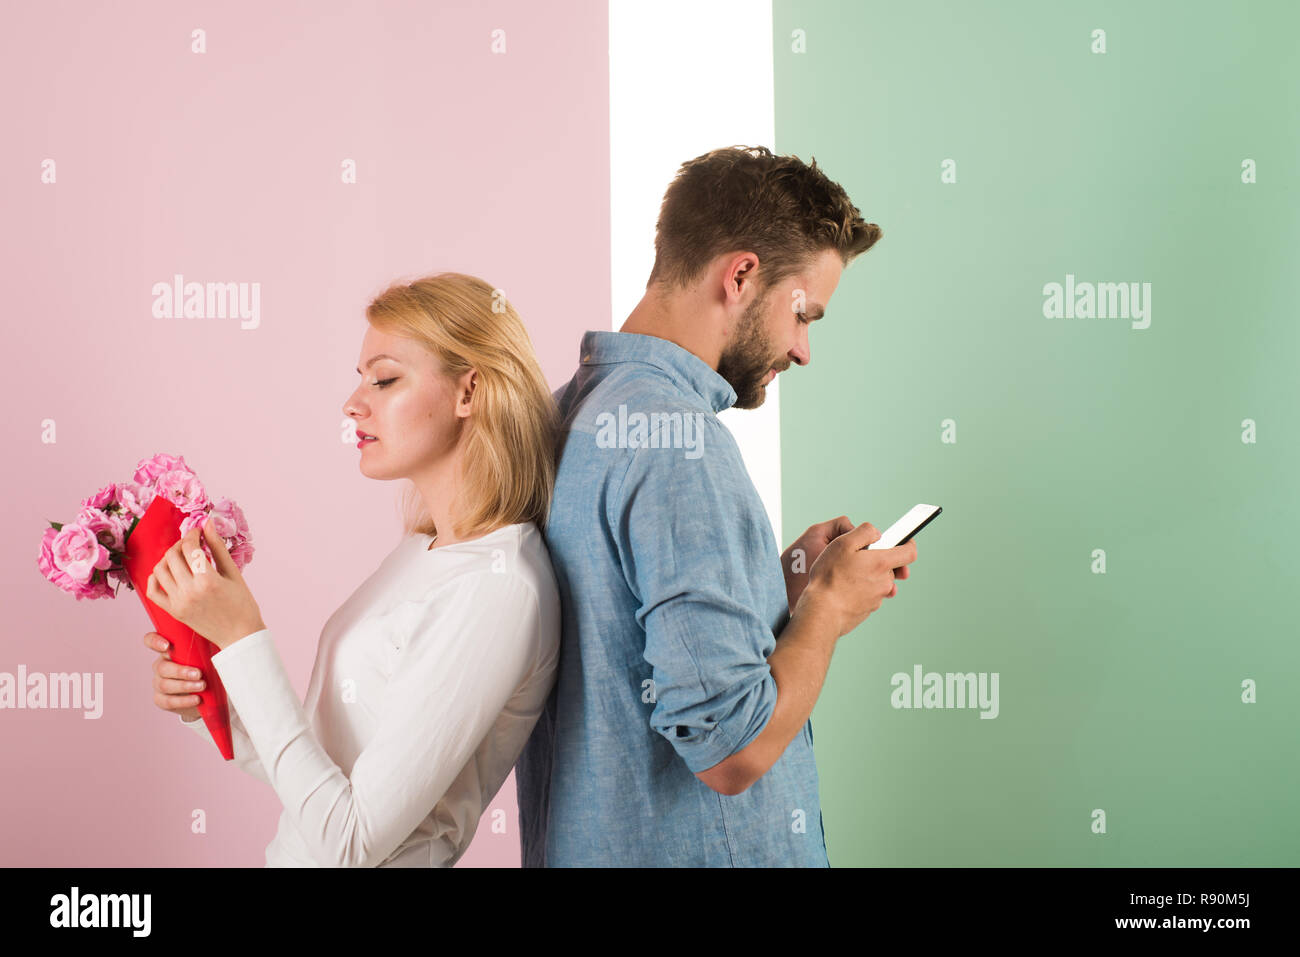 Guy with phone and girl with bouquet flowers, pastel background. Cheating concept. Man hold smartphone texting lover while stands back to back wife. Woman with flowers blind about unfaithful husband. - Stock Image